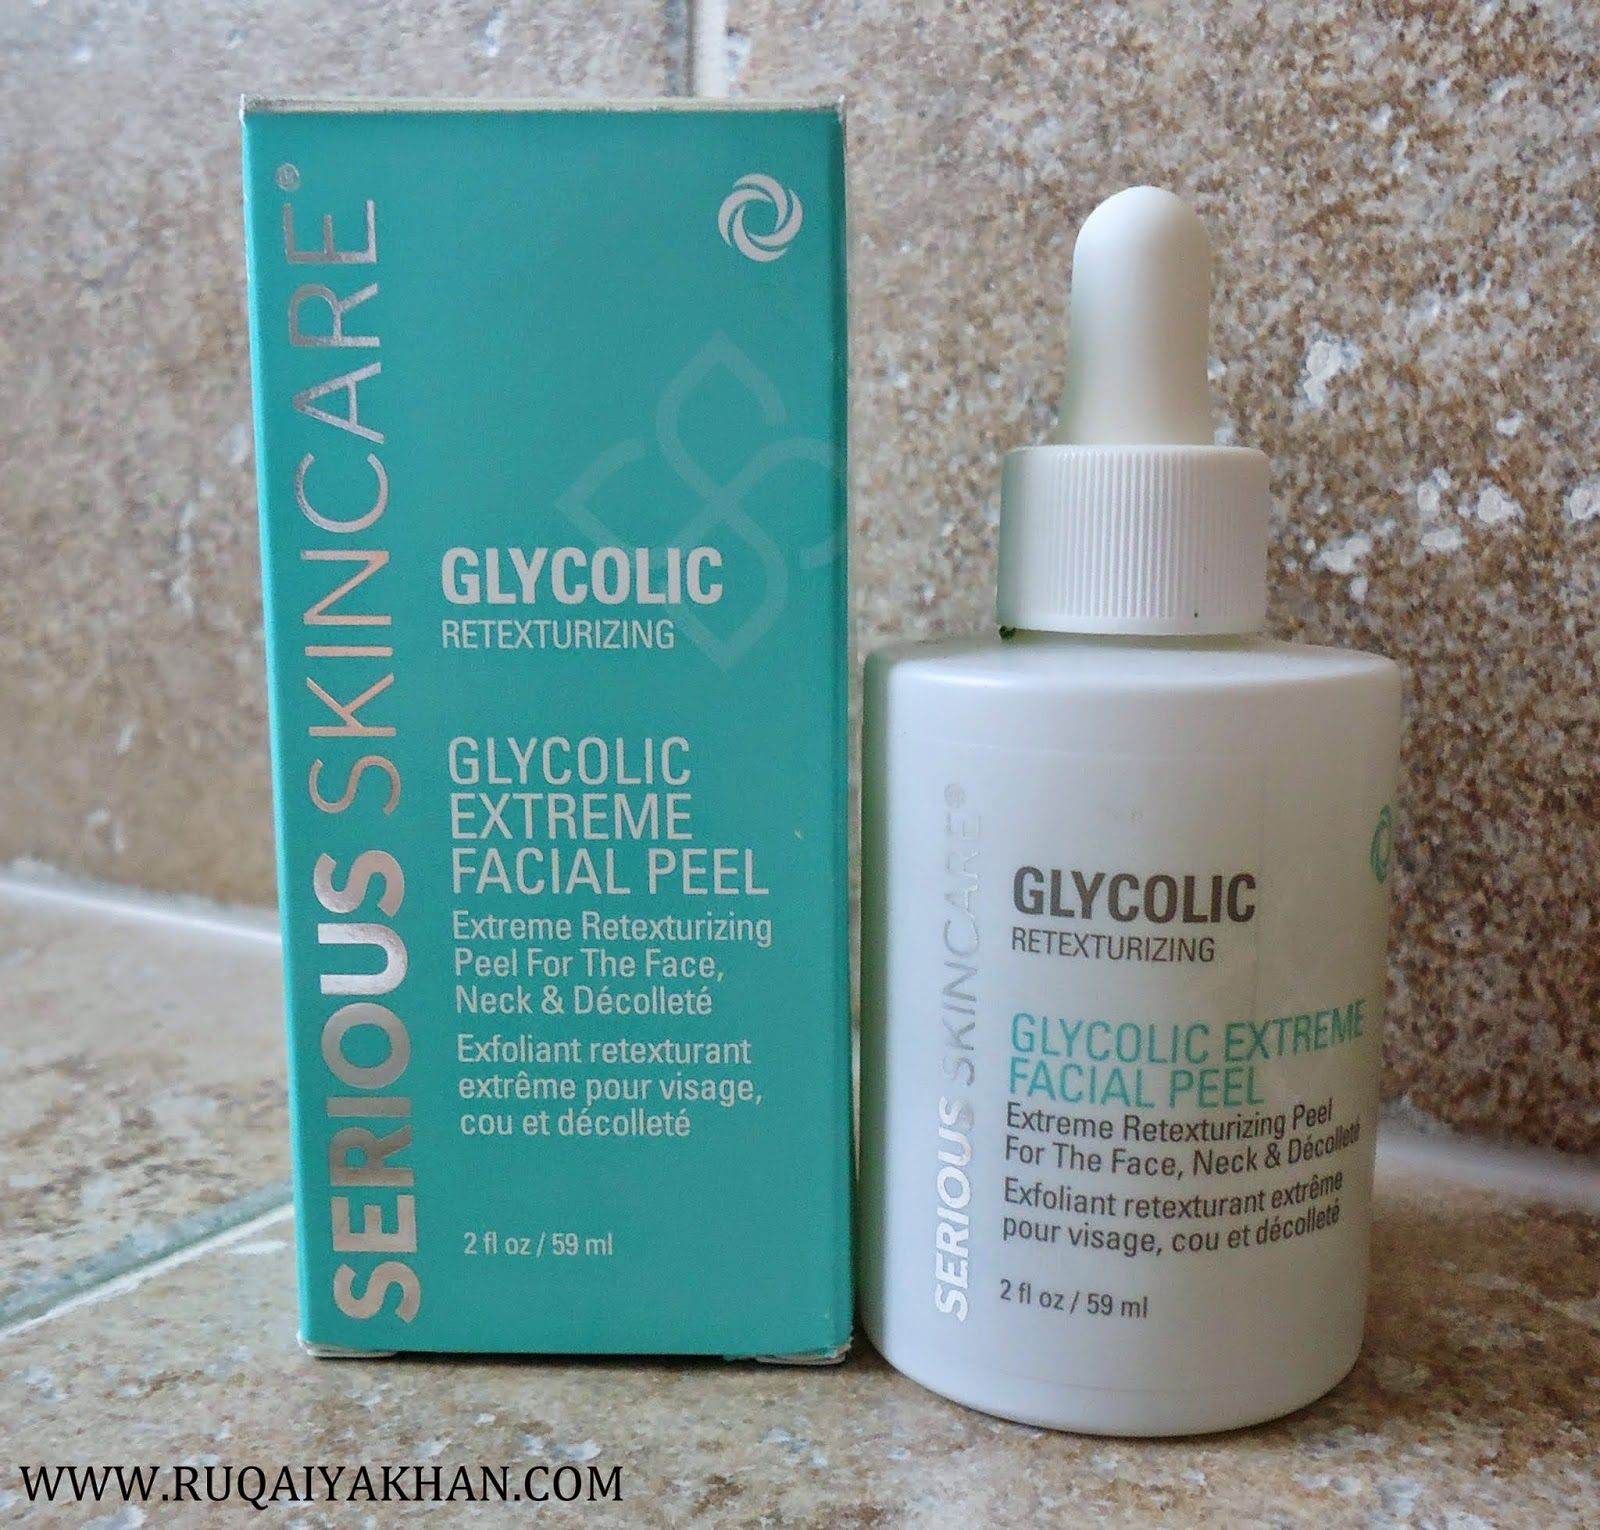 An Amazing Little Peel Strong Enough To Do The Job Effectively But Not Too Harsh As To Hurt The Skin Skin Care Facial Peel Glycolic Peel